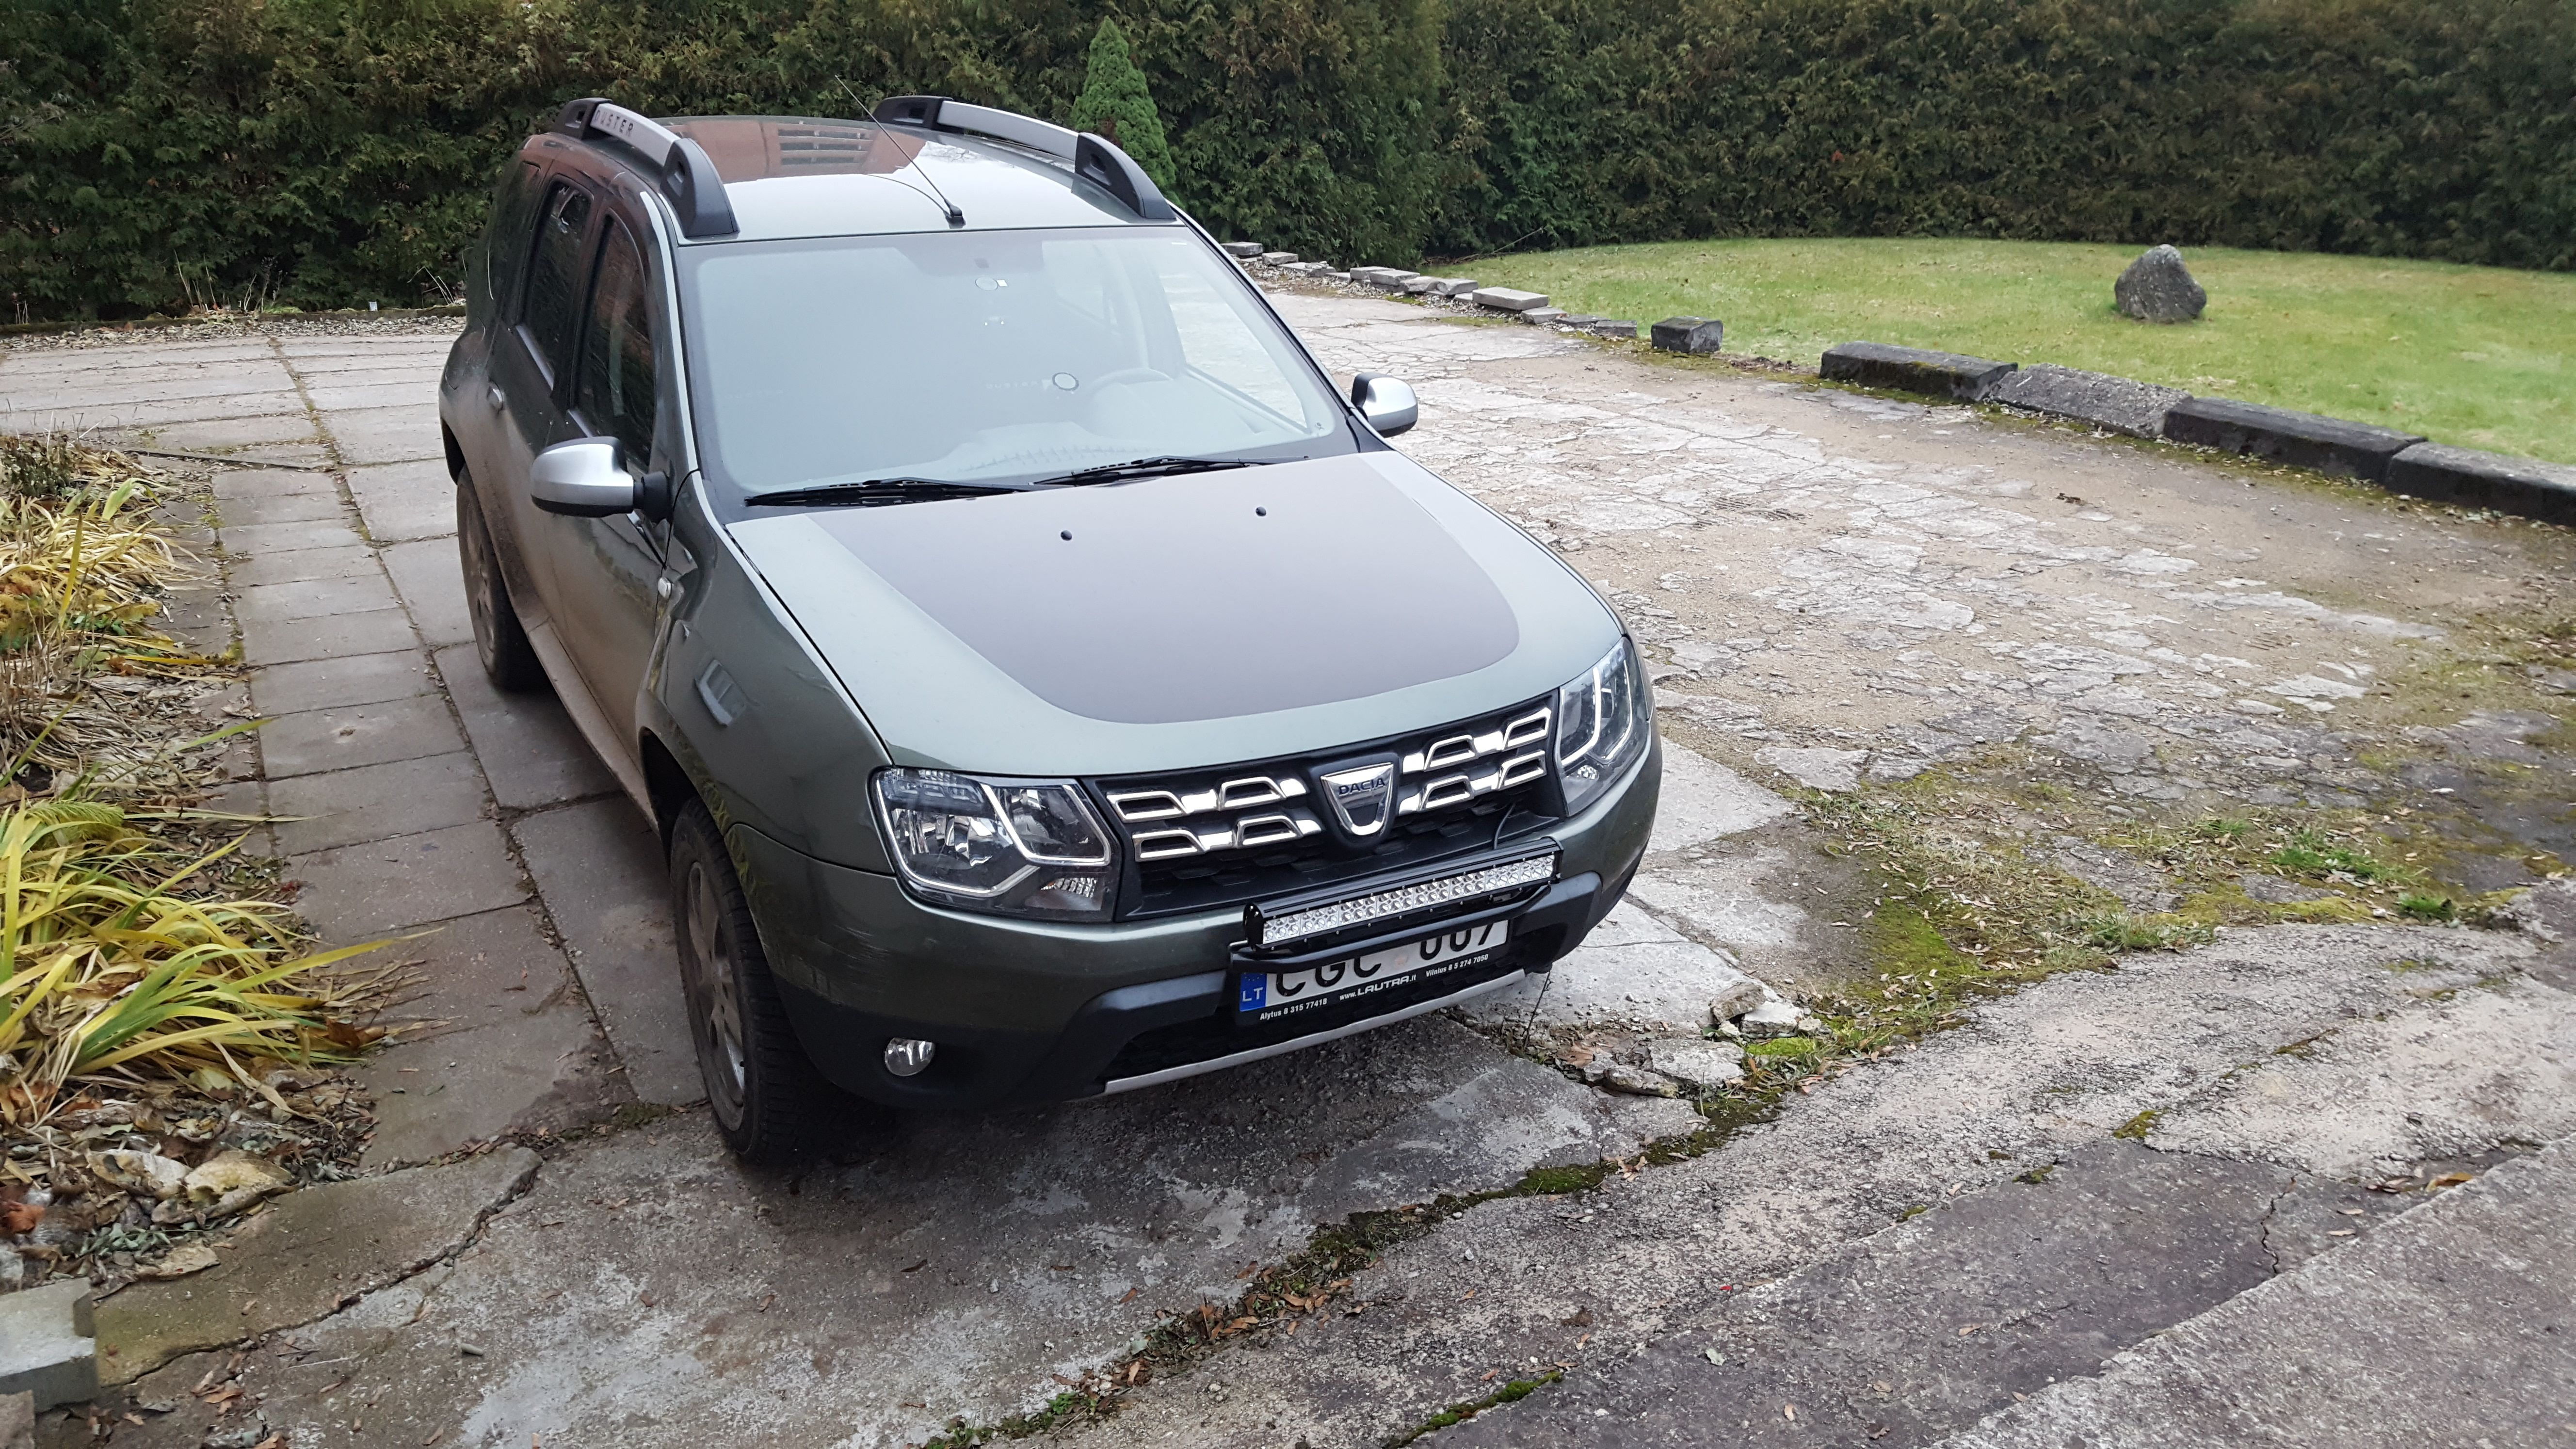 Dacia duster front bull bar and spot bar led light dacia duster dacia duster front bull bar and spot bar led light mozeypictures Gallery